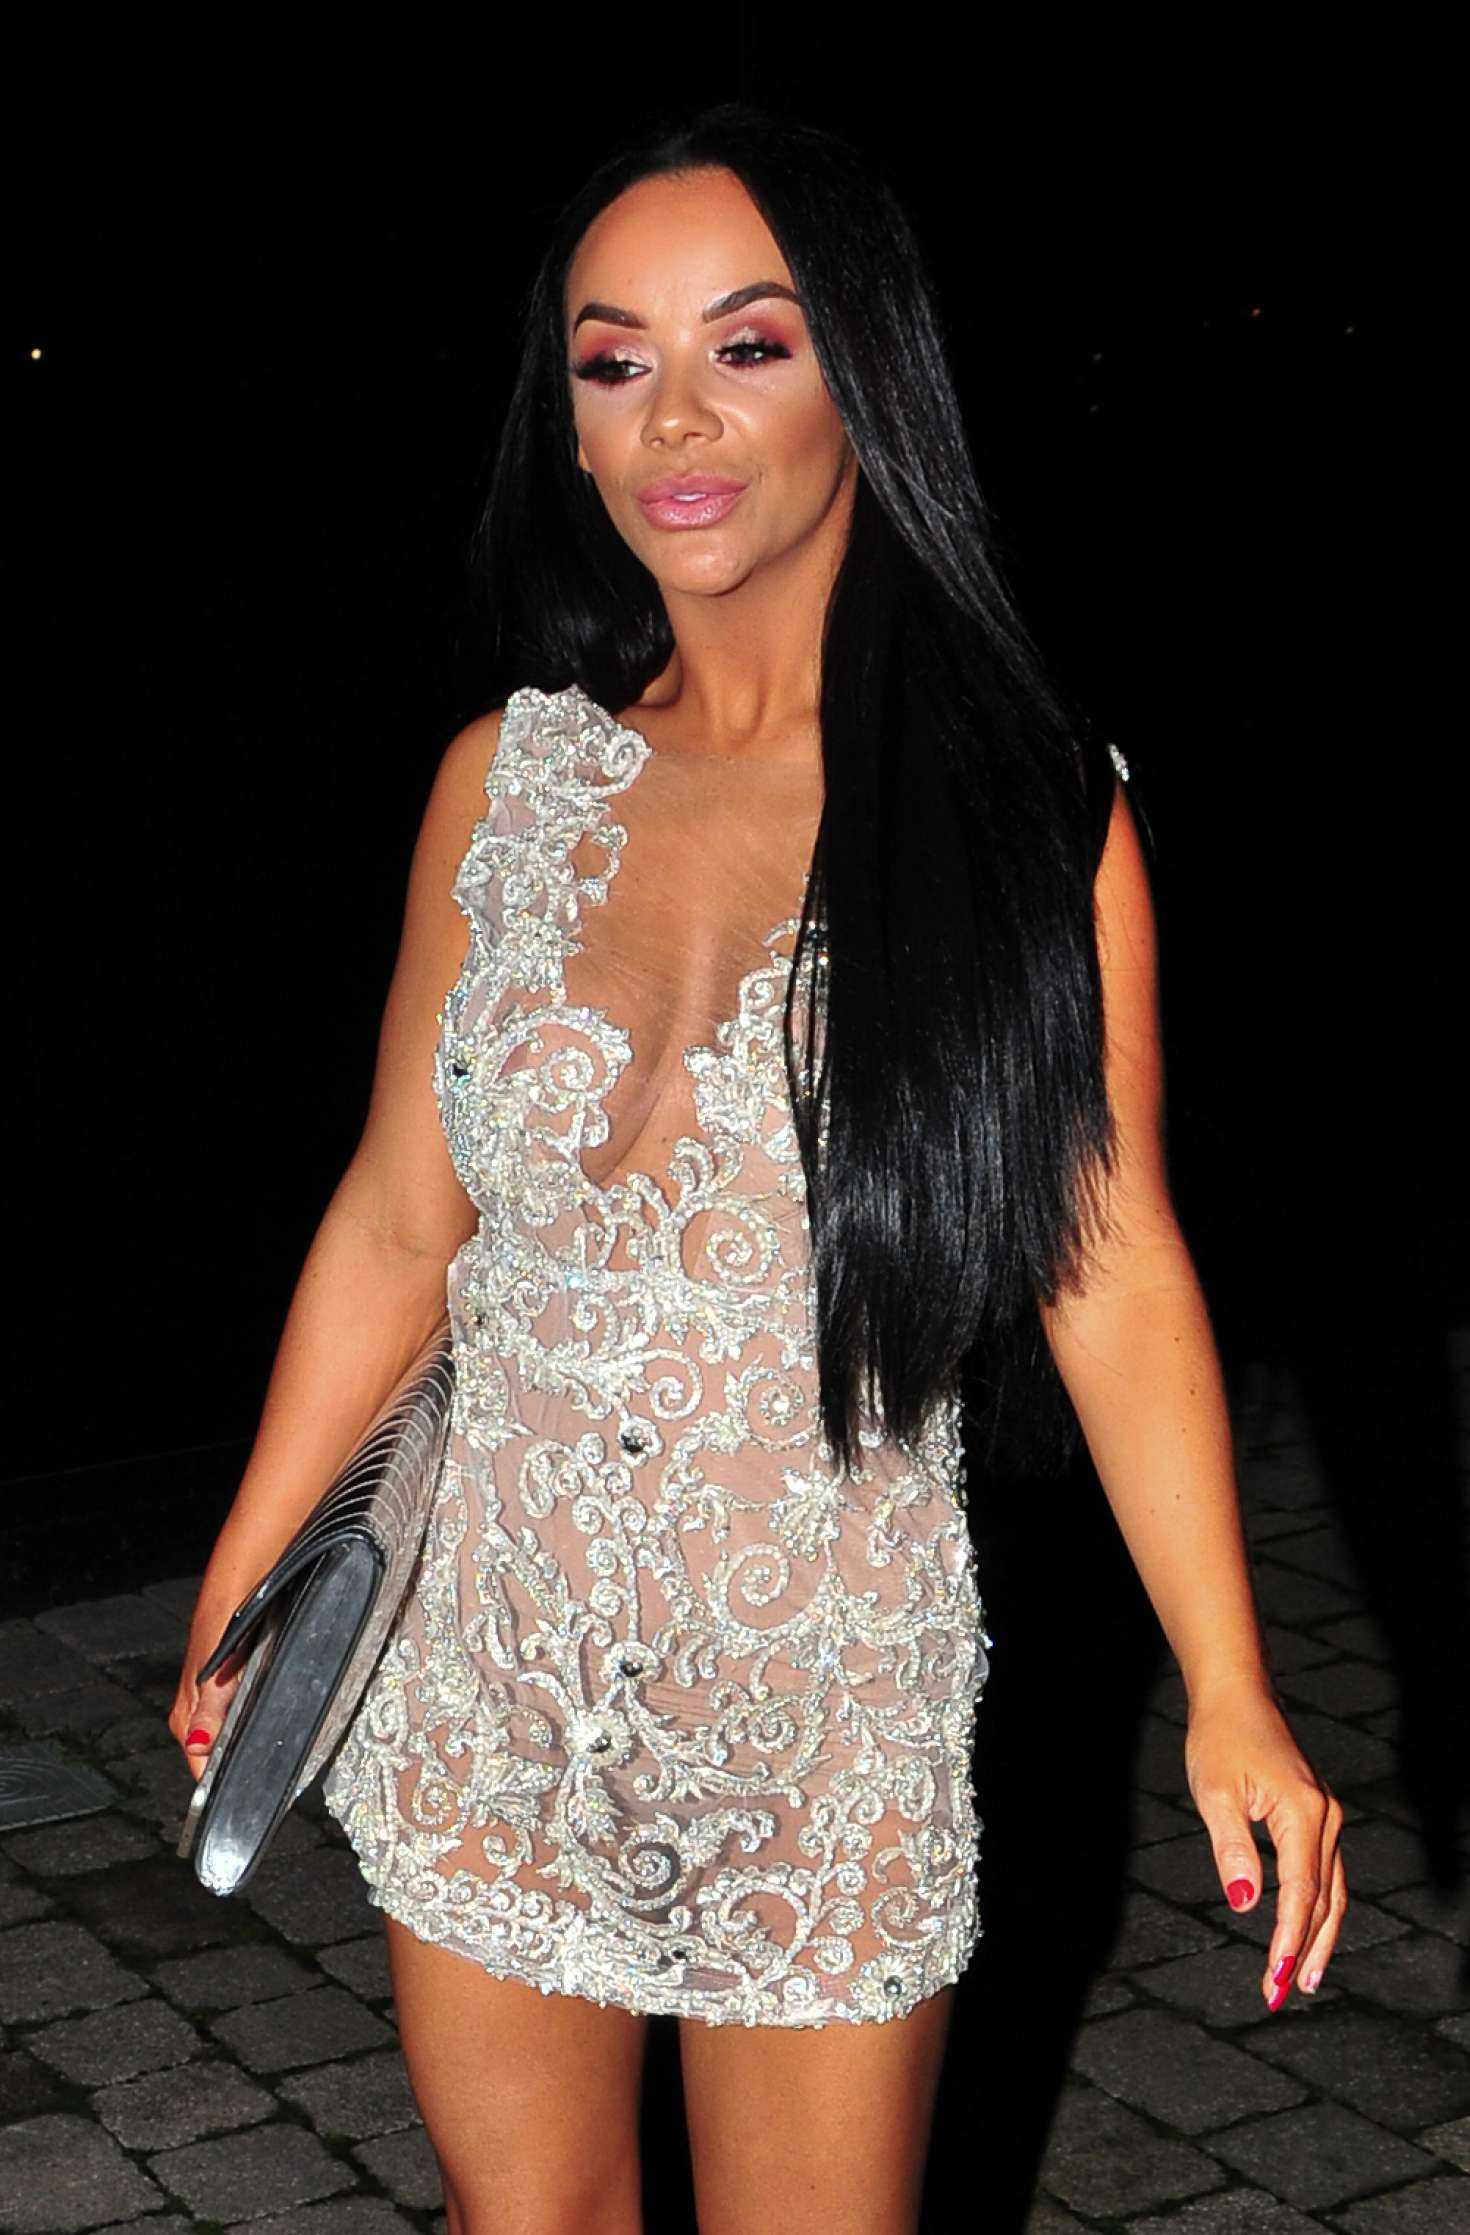 Chelsee Healey - Sugar Hut opens a new branch in Liverpool